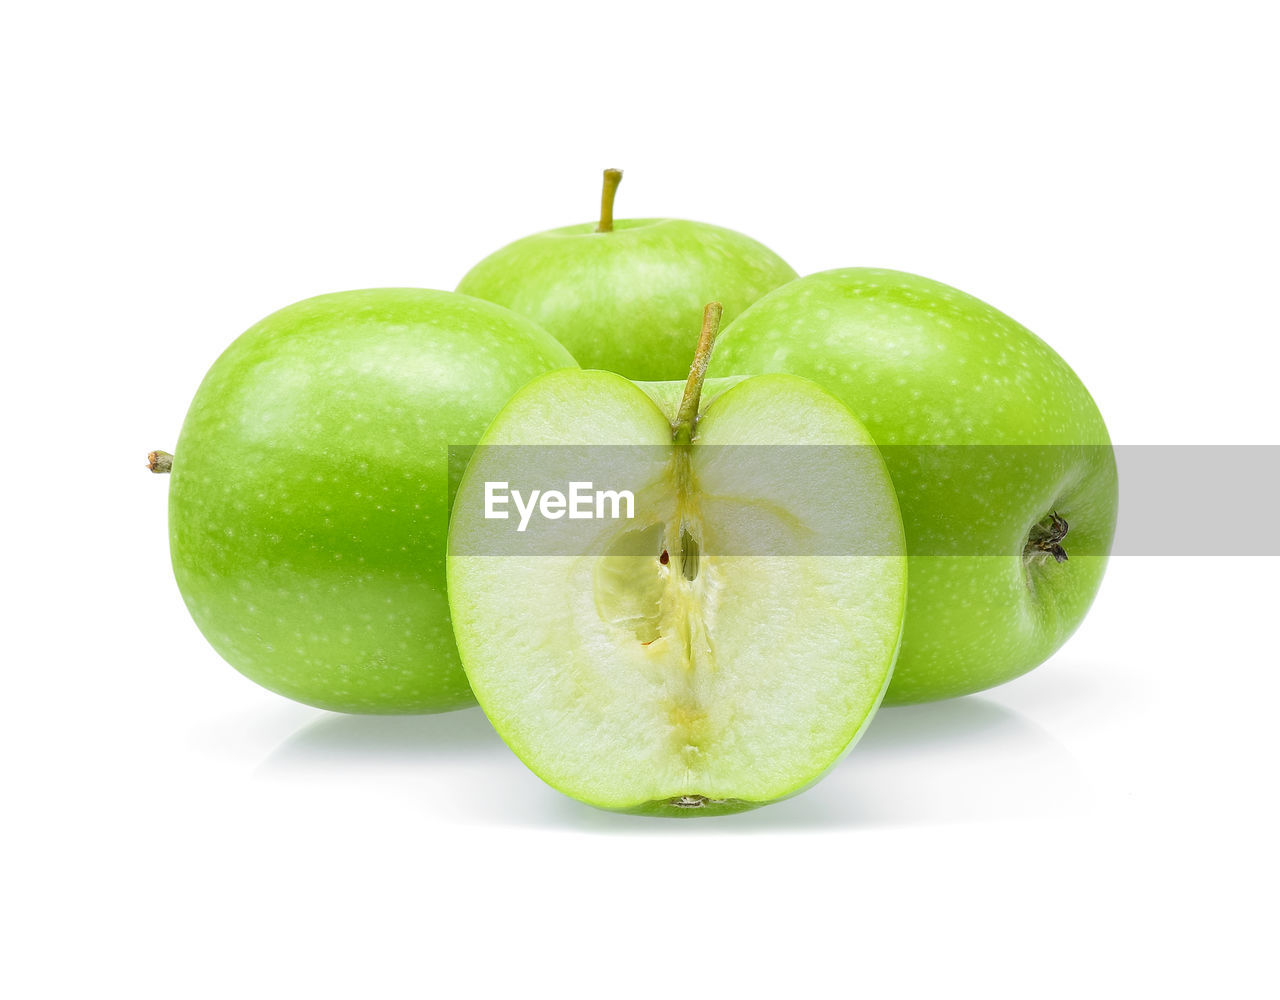 fruit, healthy eating, green color, wellbeing, white background, food and drink, food, apple - fruit, studio shot, still life, freshness, apple, cut out, close-up, indoors, no people, granny smith apple, group of objects, plant stem, slice